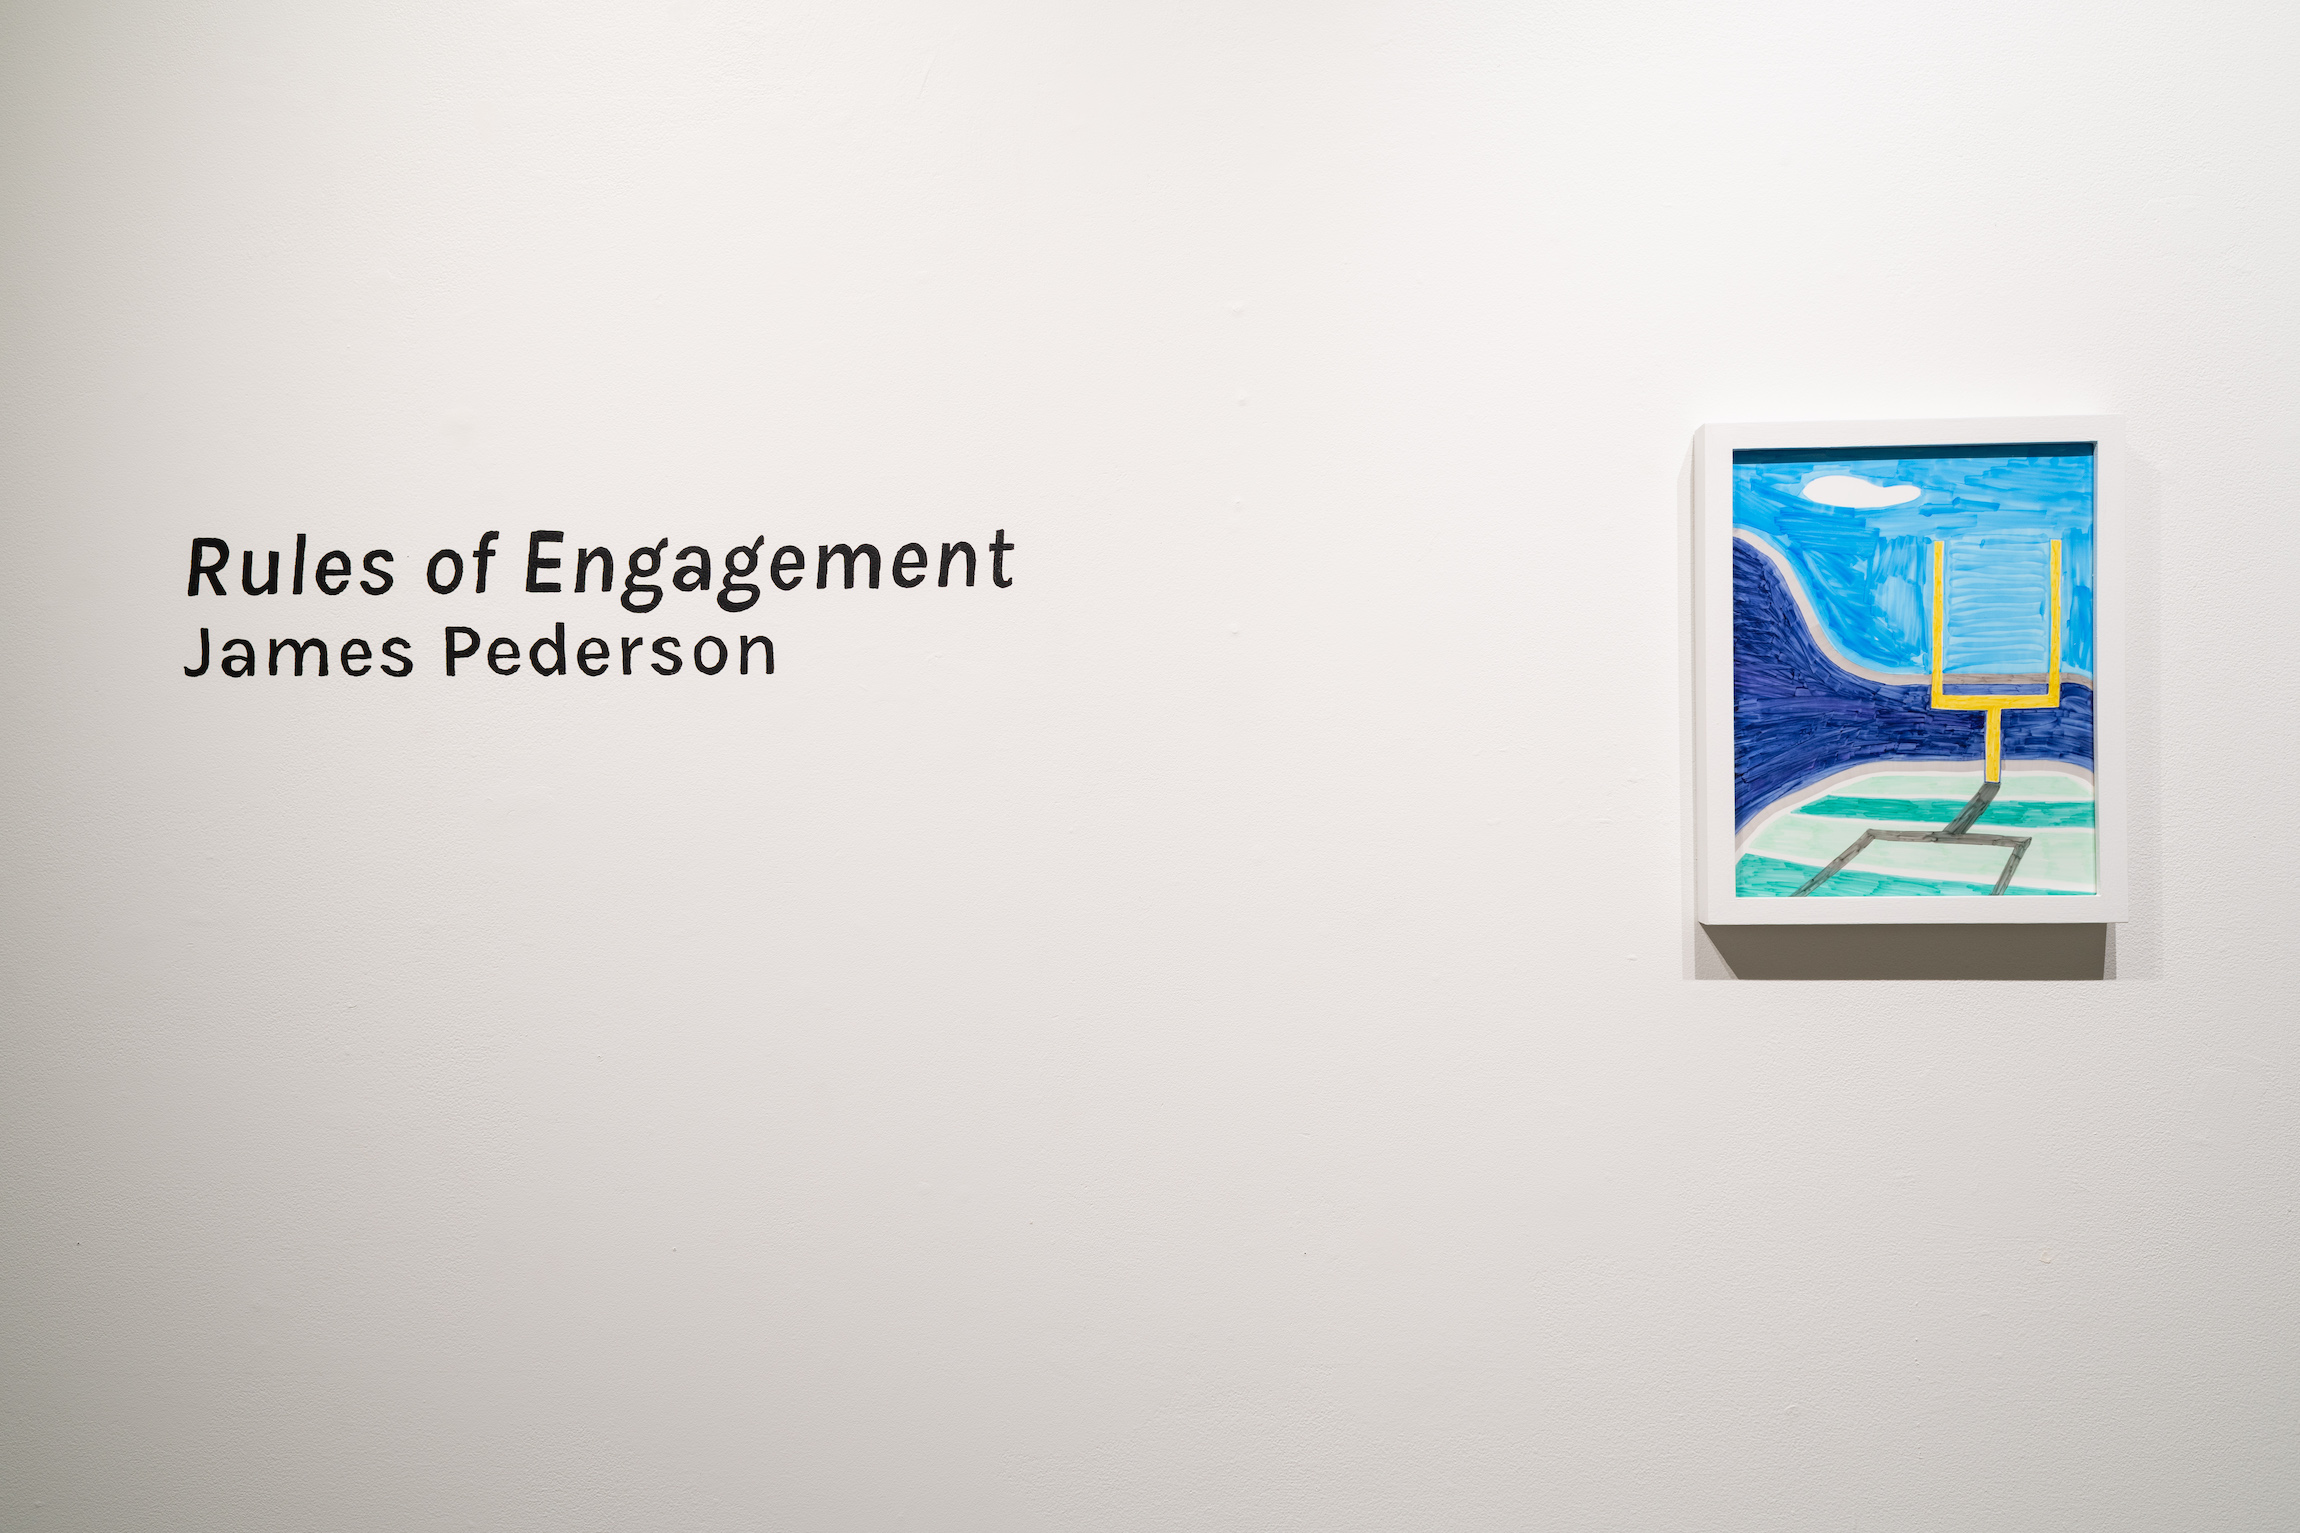 Installation view of James Pederson's Master of Fine Arts exhibition Rules of Engagement at the Gallery 7 of the Humanities Building, University of Wisconsin-Madison. Photography by Kyle Herrera.